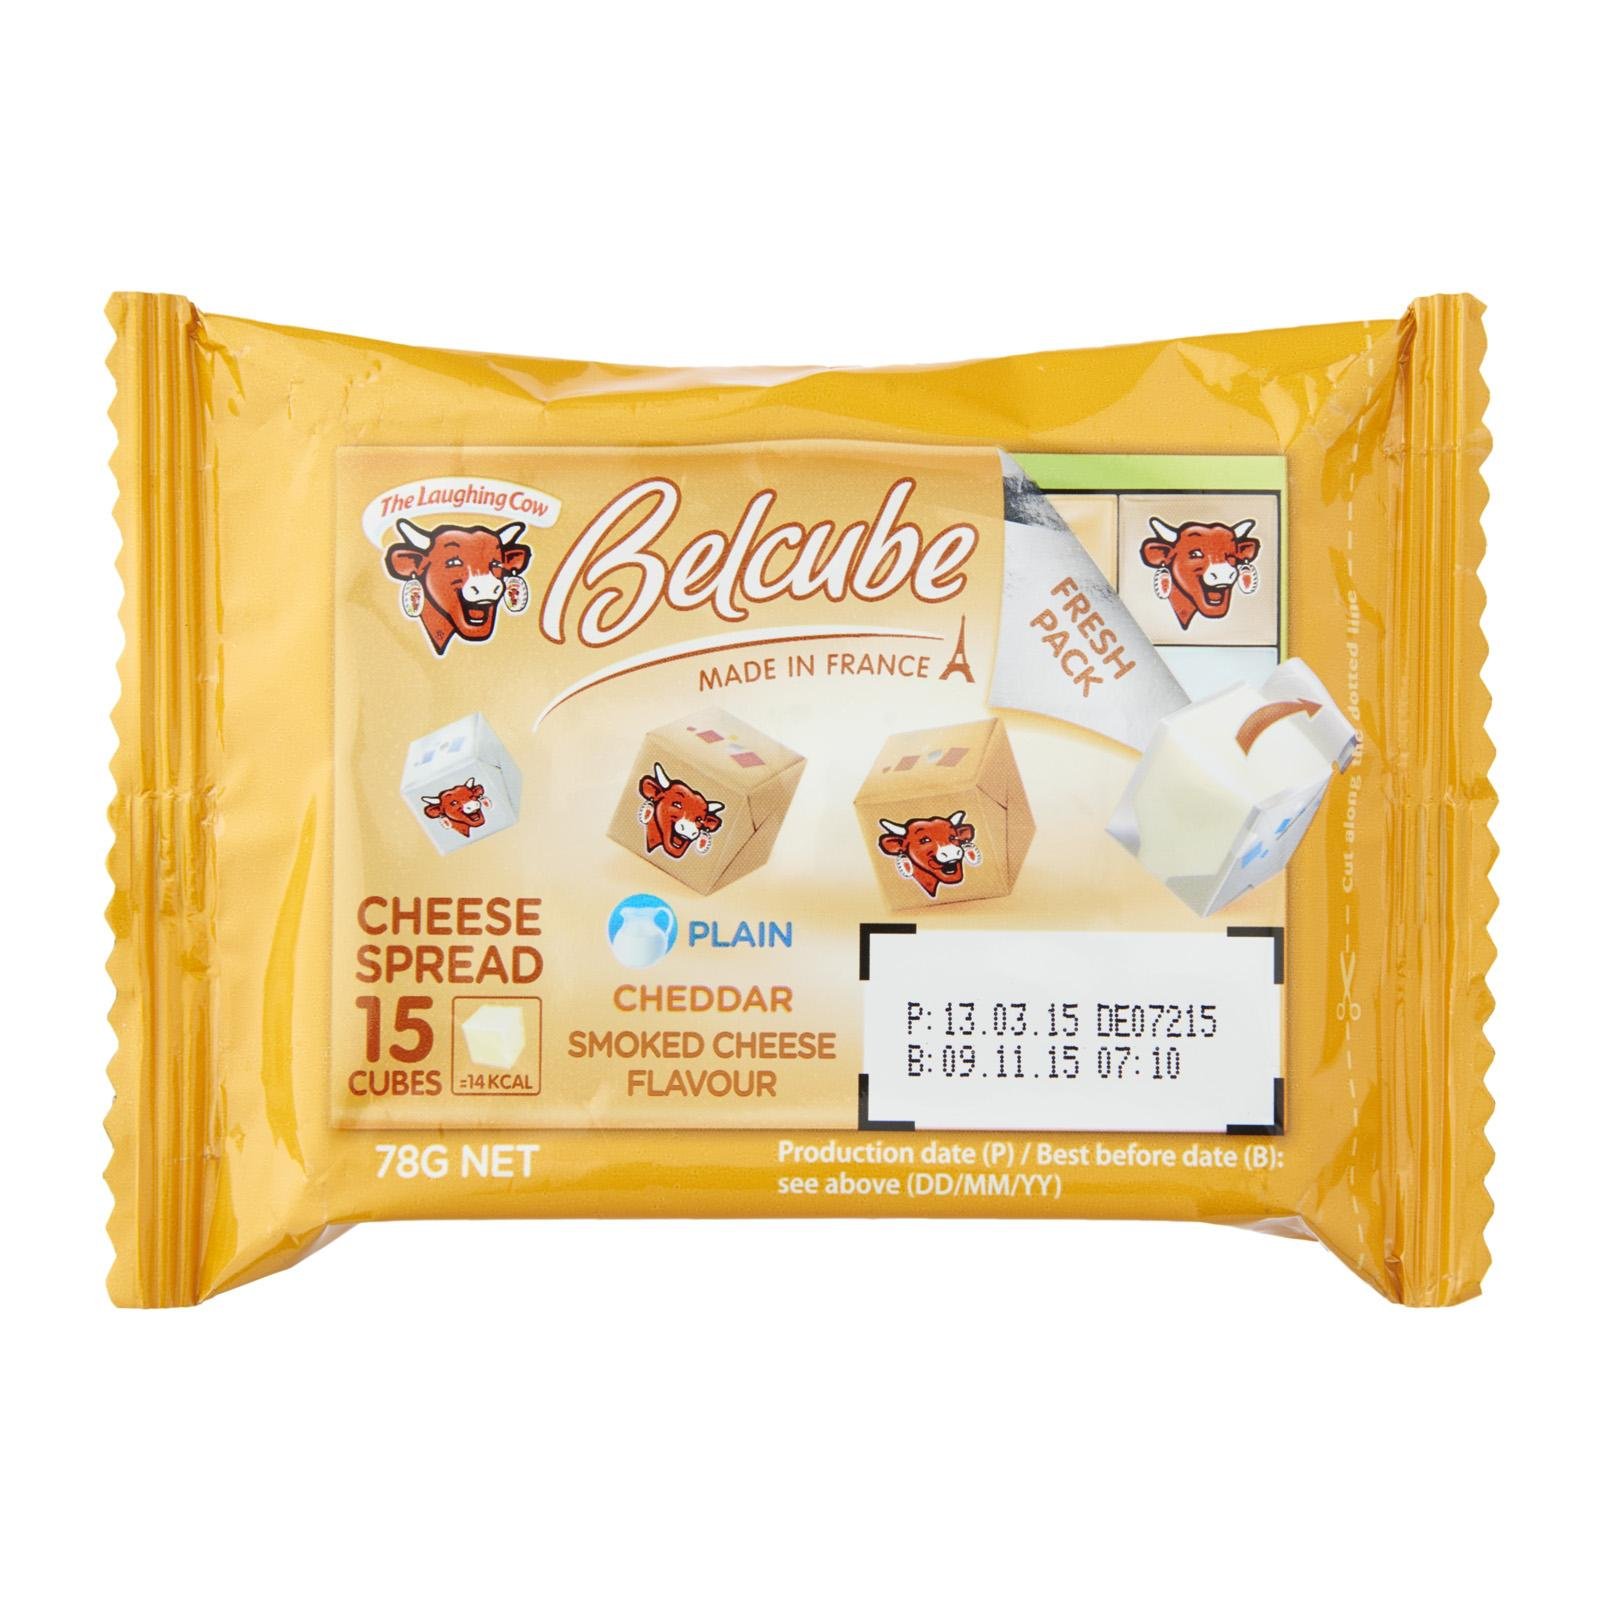 Belcube Yellow 15 cubes (Smoked Flavour Plain and Cheddar Cheese)